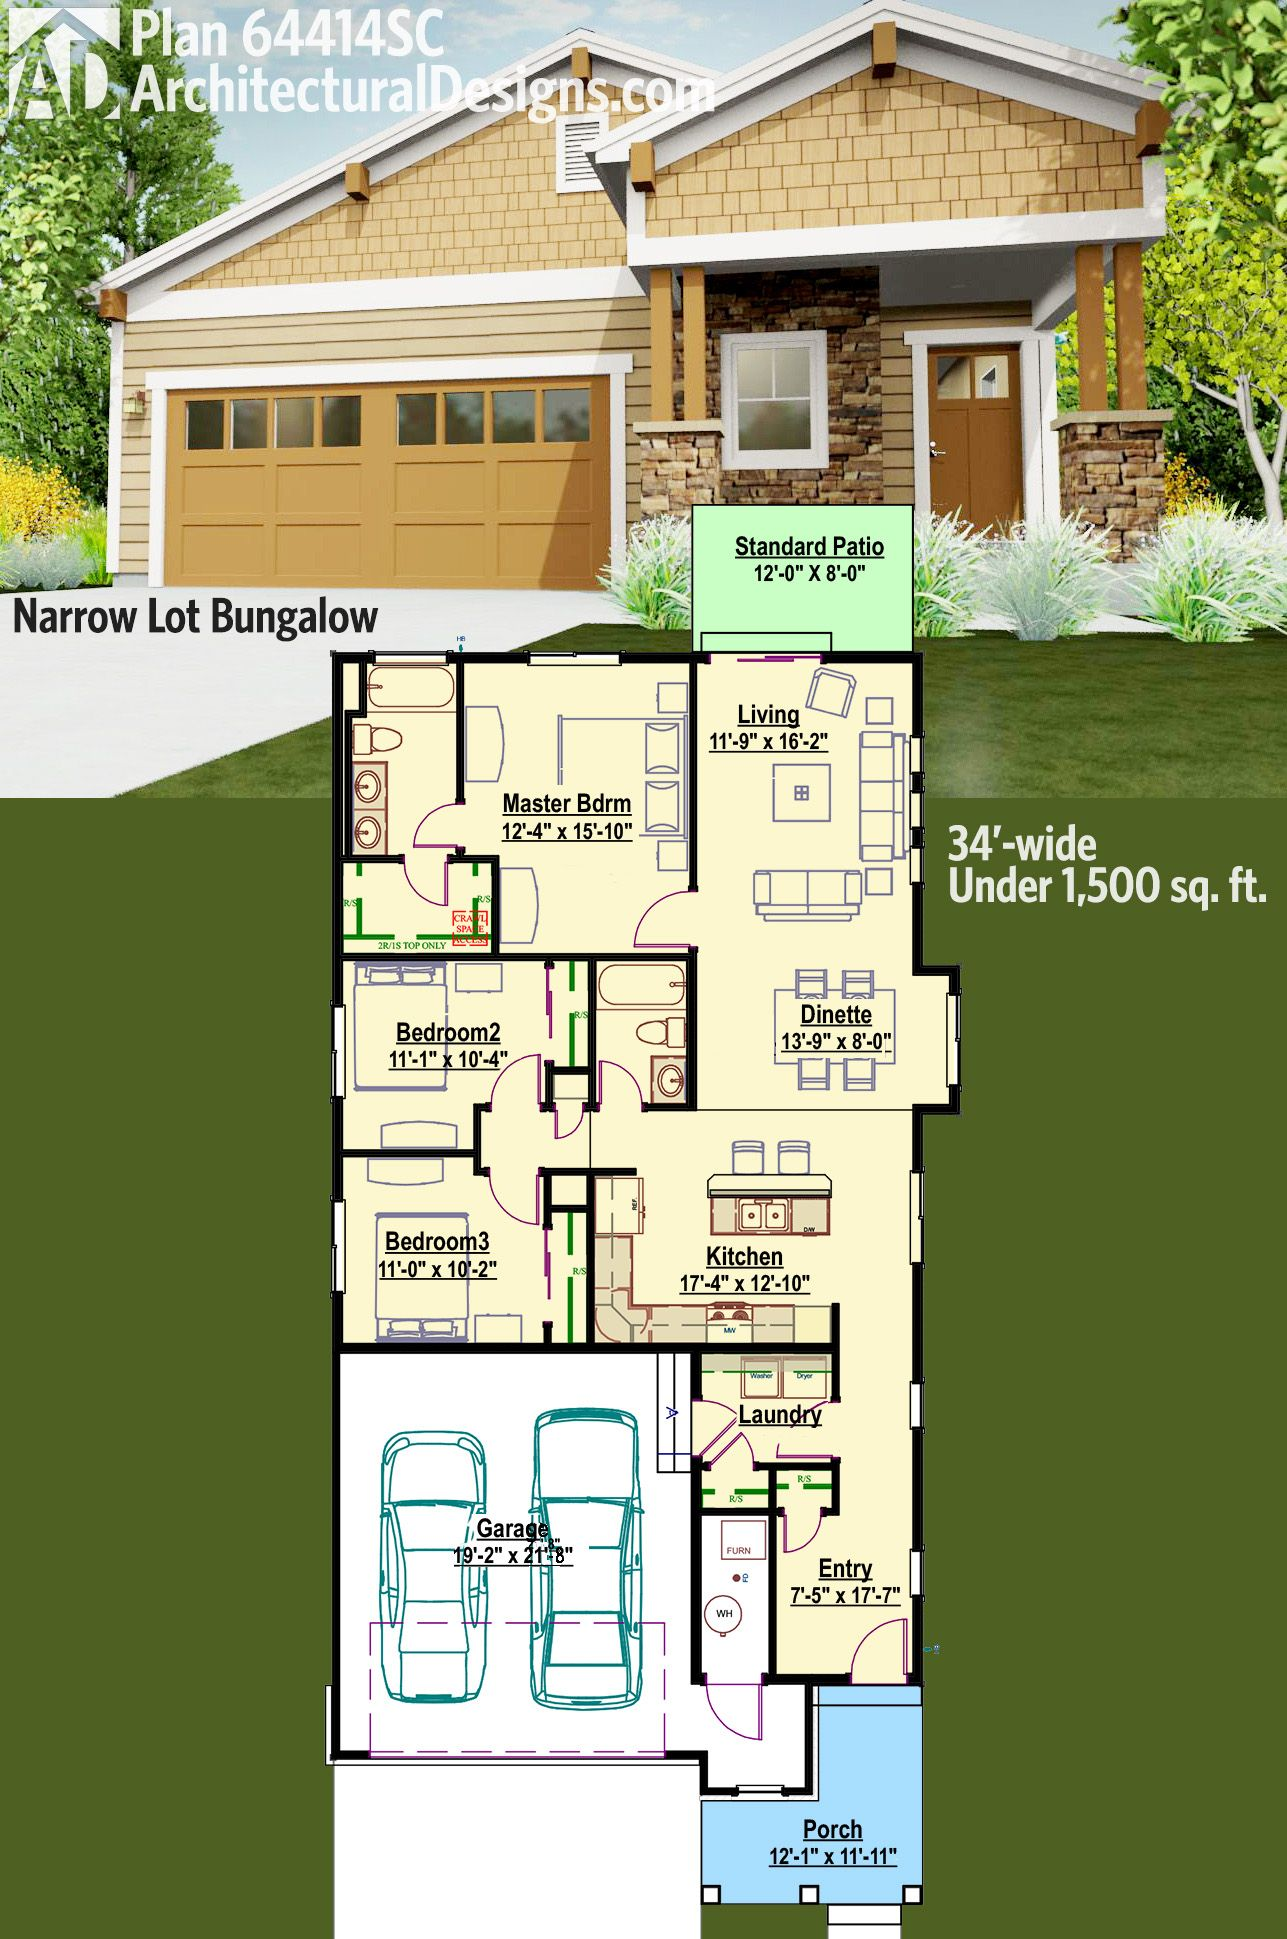 Plan 64414SC: Narrow Lot Bungalow in 2019 | Dream house ... on